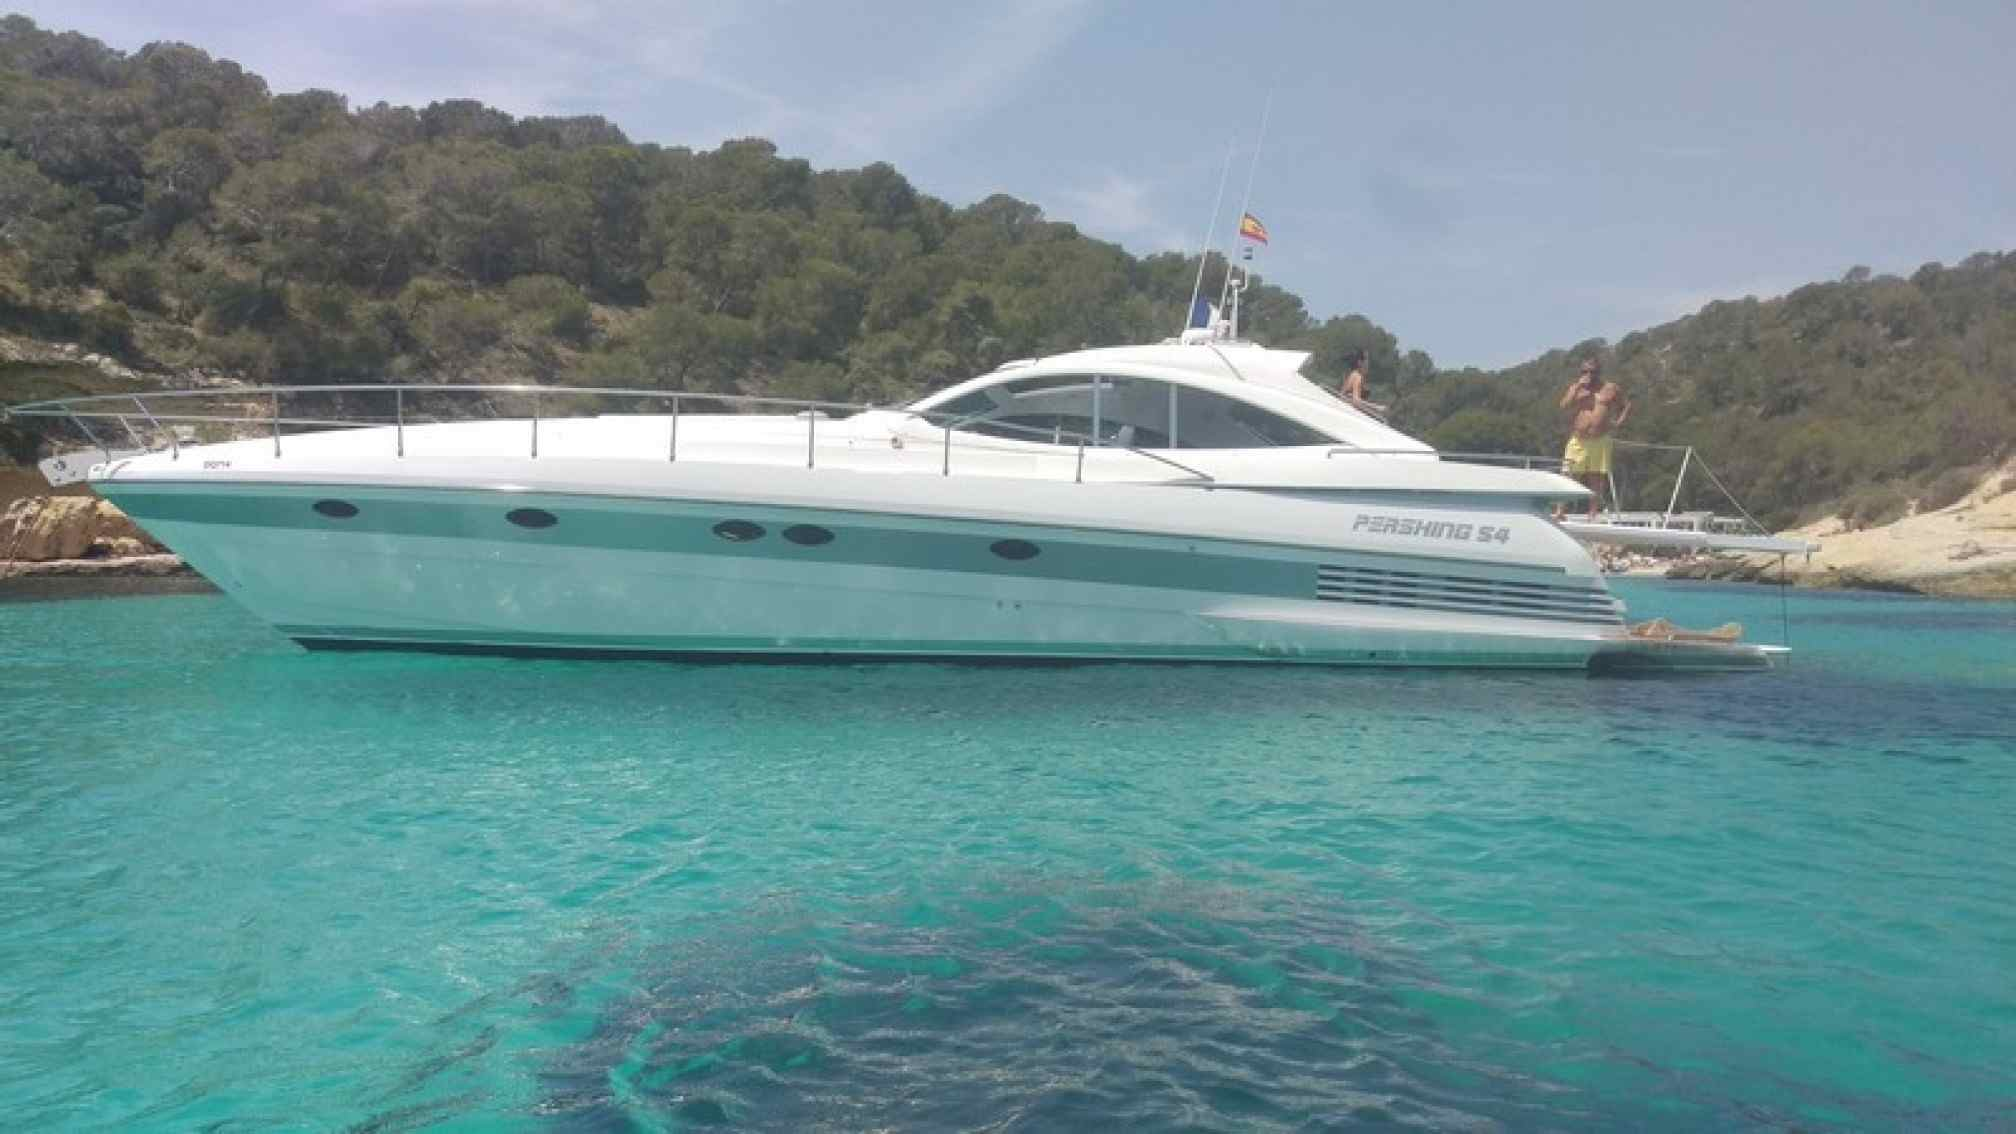 Pershing 54 charter yacht anchored